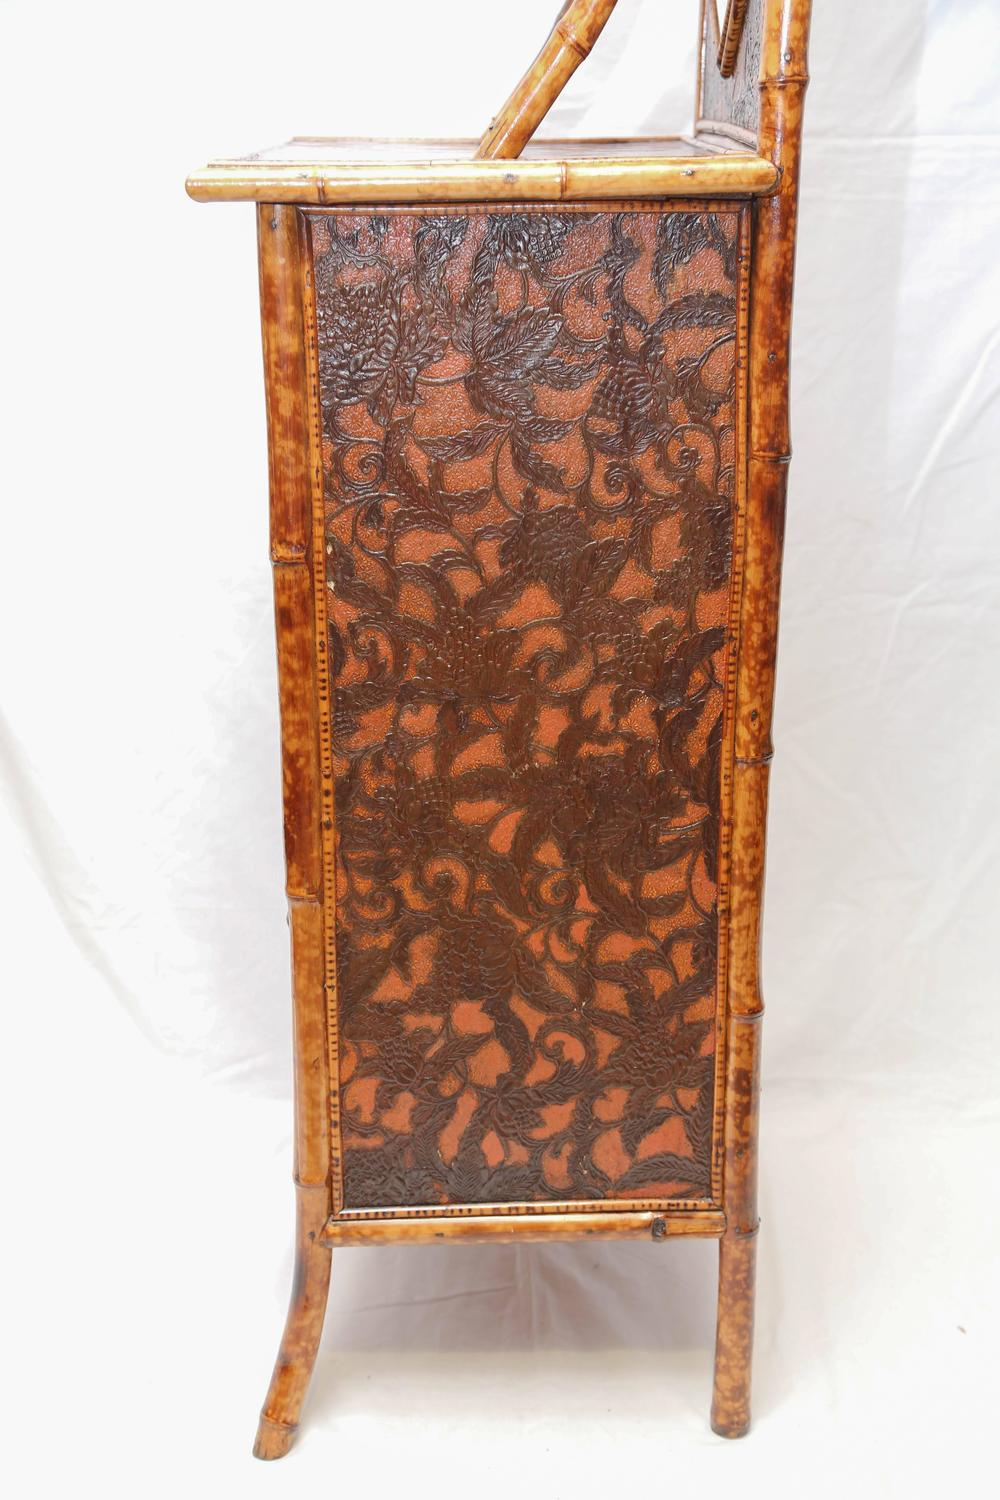 Superb 19th century english bamboo cabinet for sale at 1stdibs for Bamboo kitchen cabinets for sale